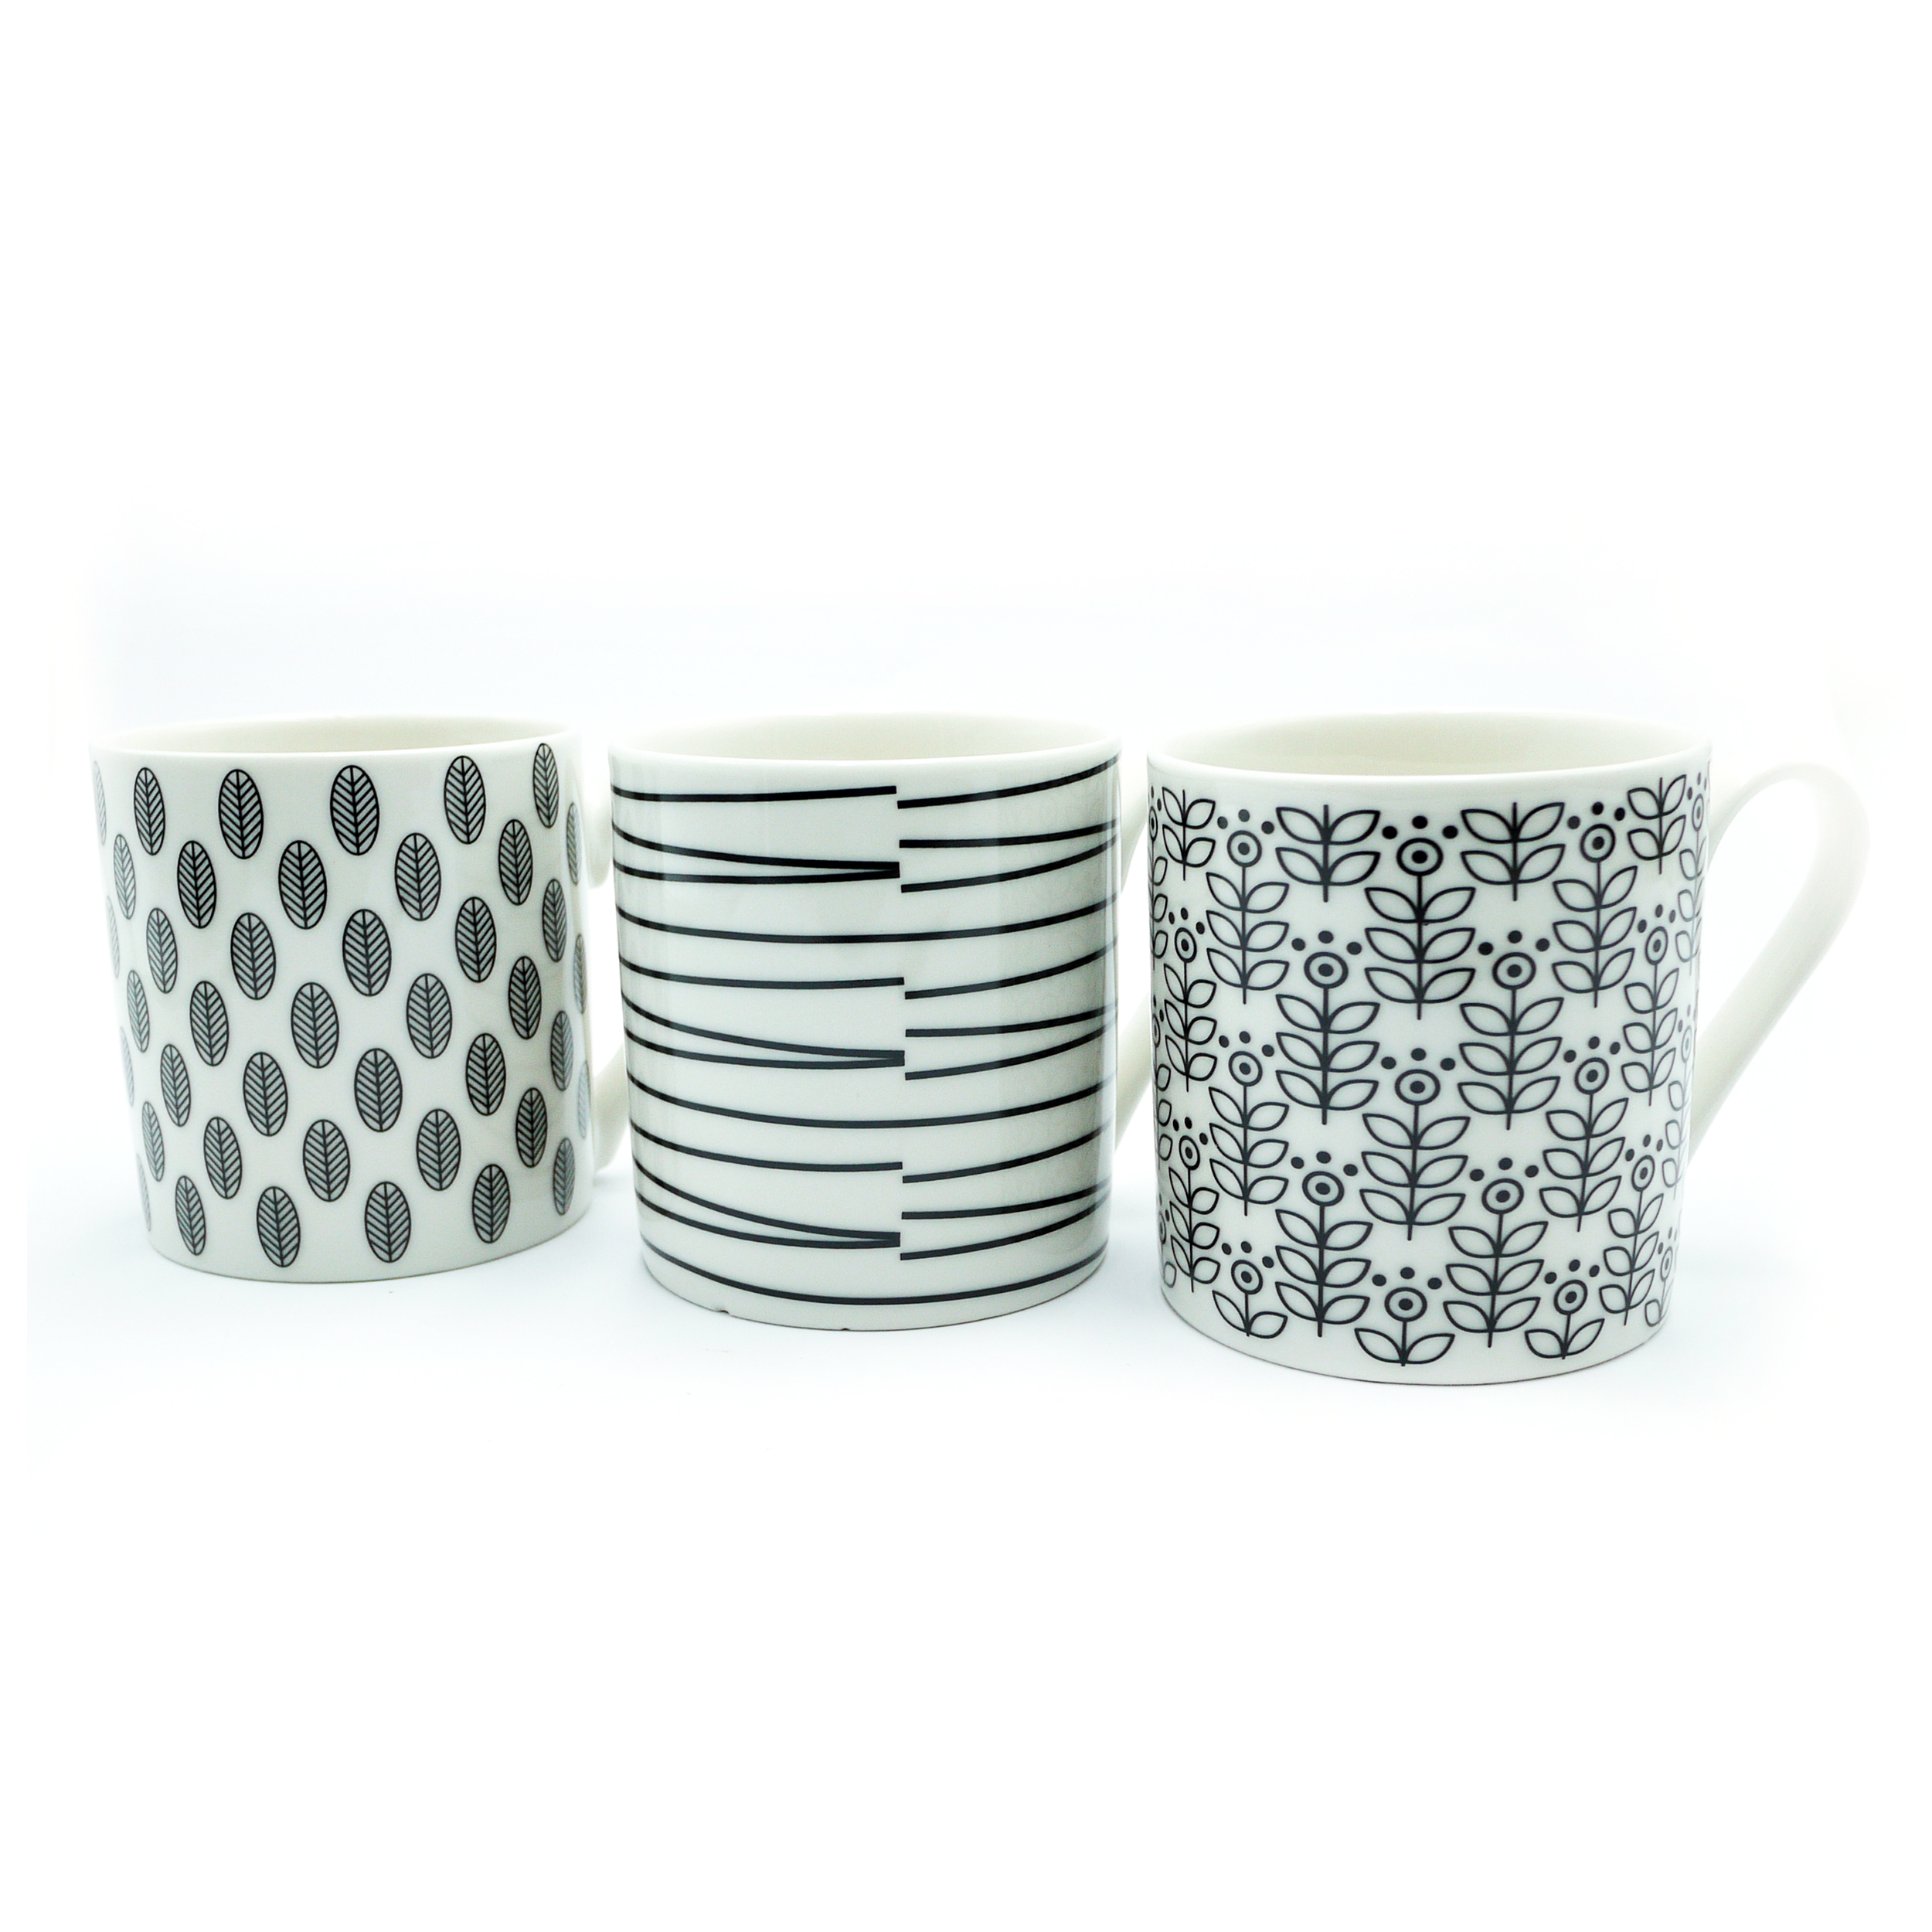 Squat Mugs Patterned 12oz Black & White Ref 0399290 Pack 12